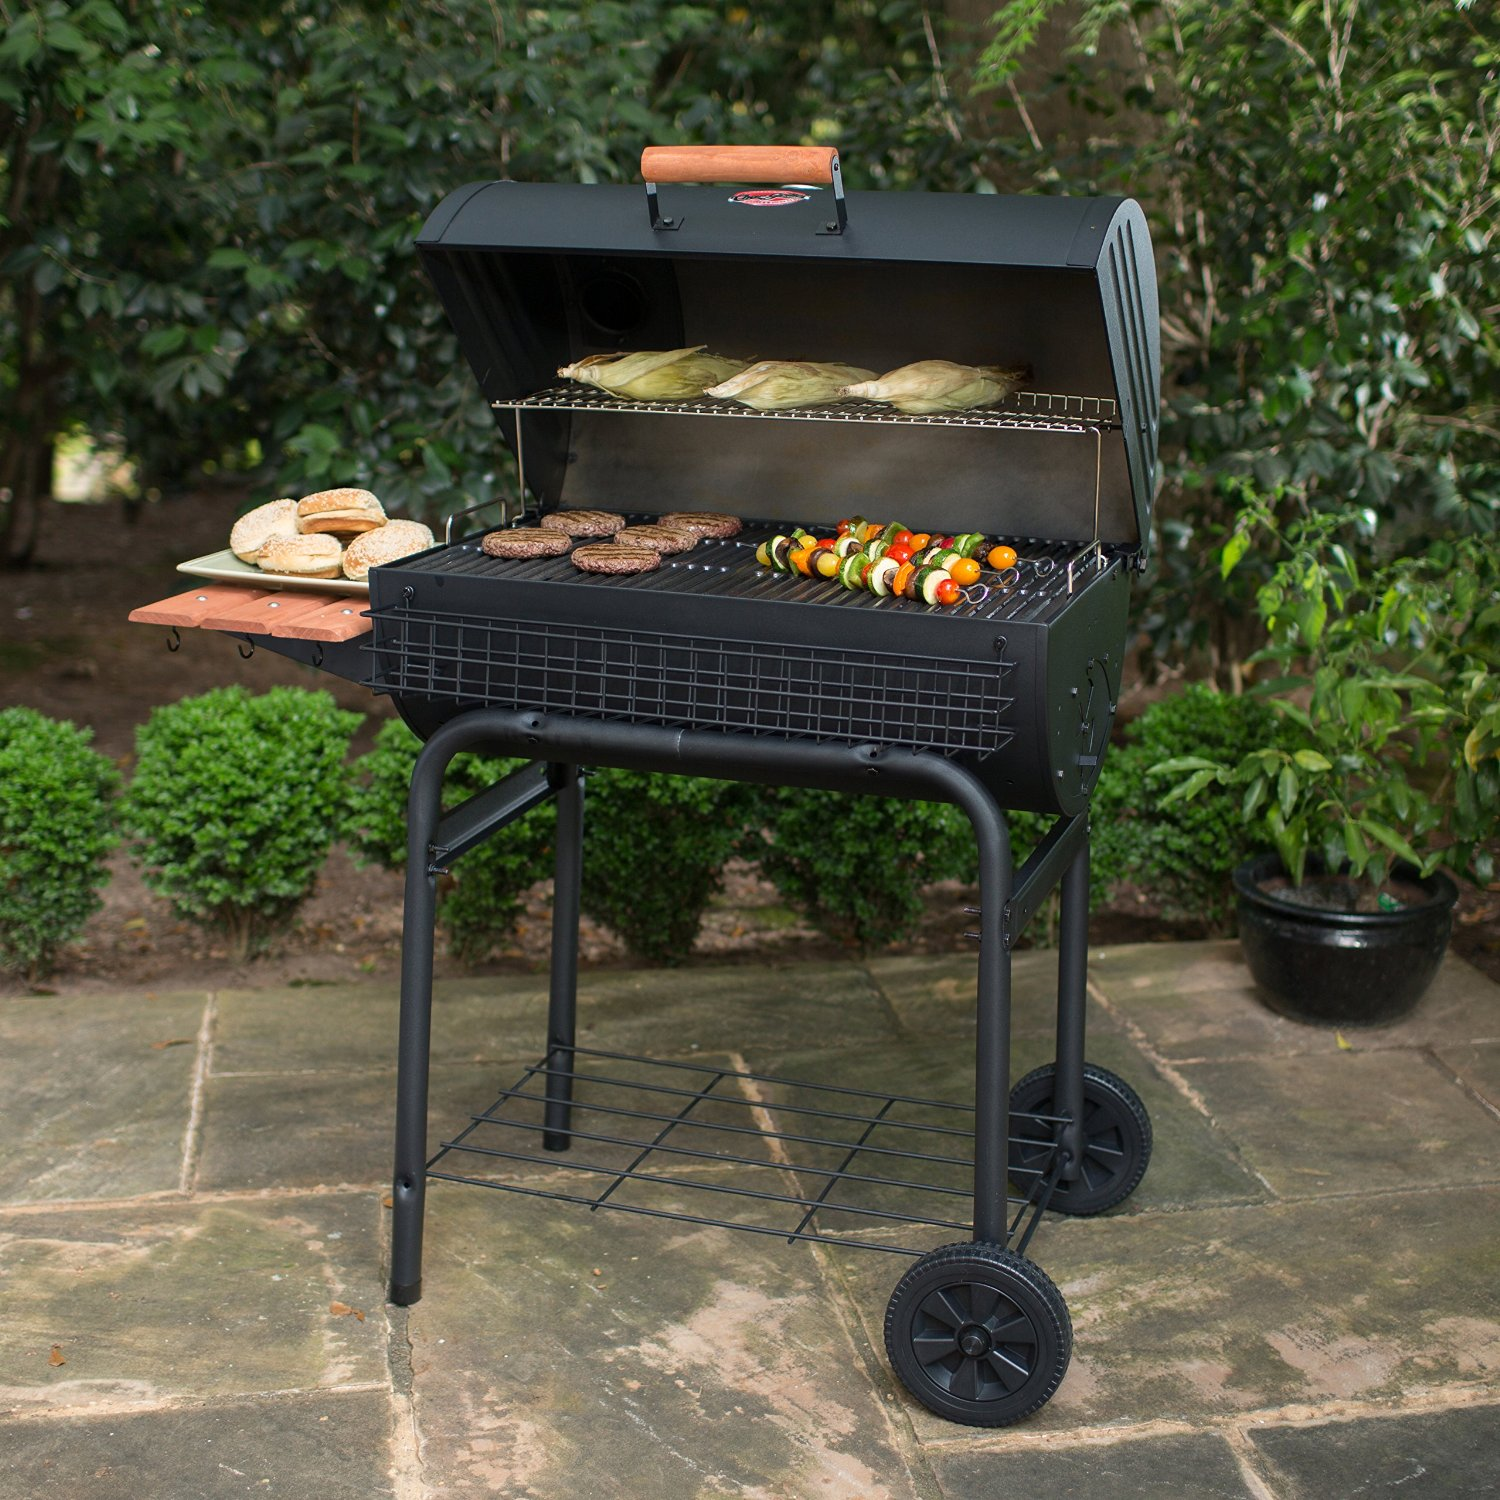 Char-Griller Deluxe Griller – Portable Charcoal Grill